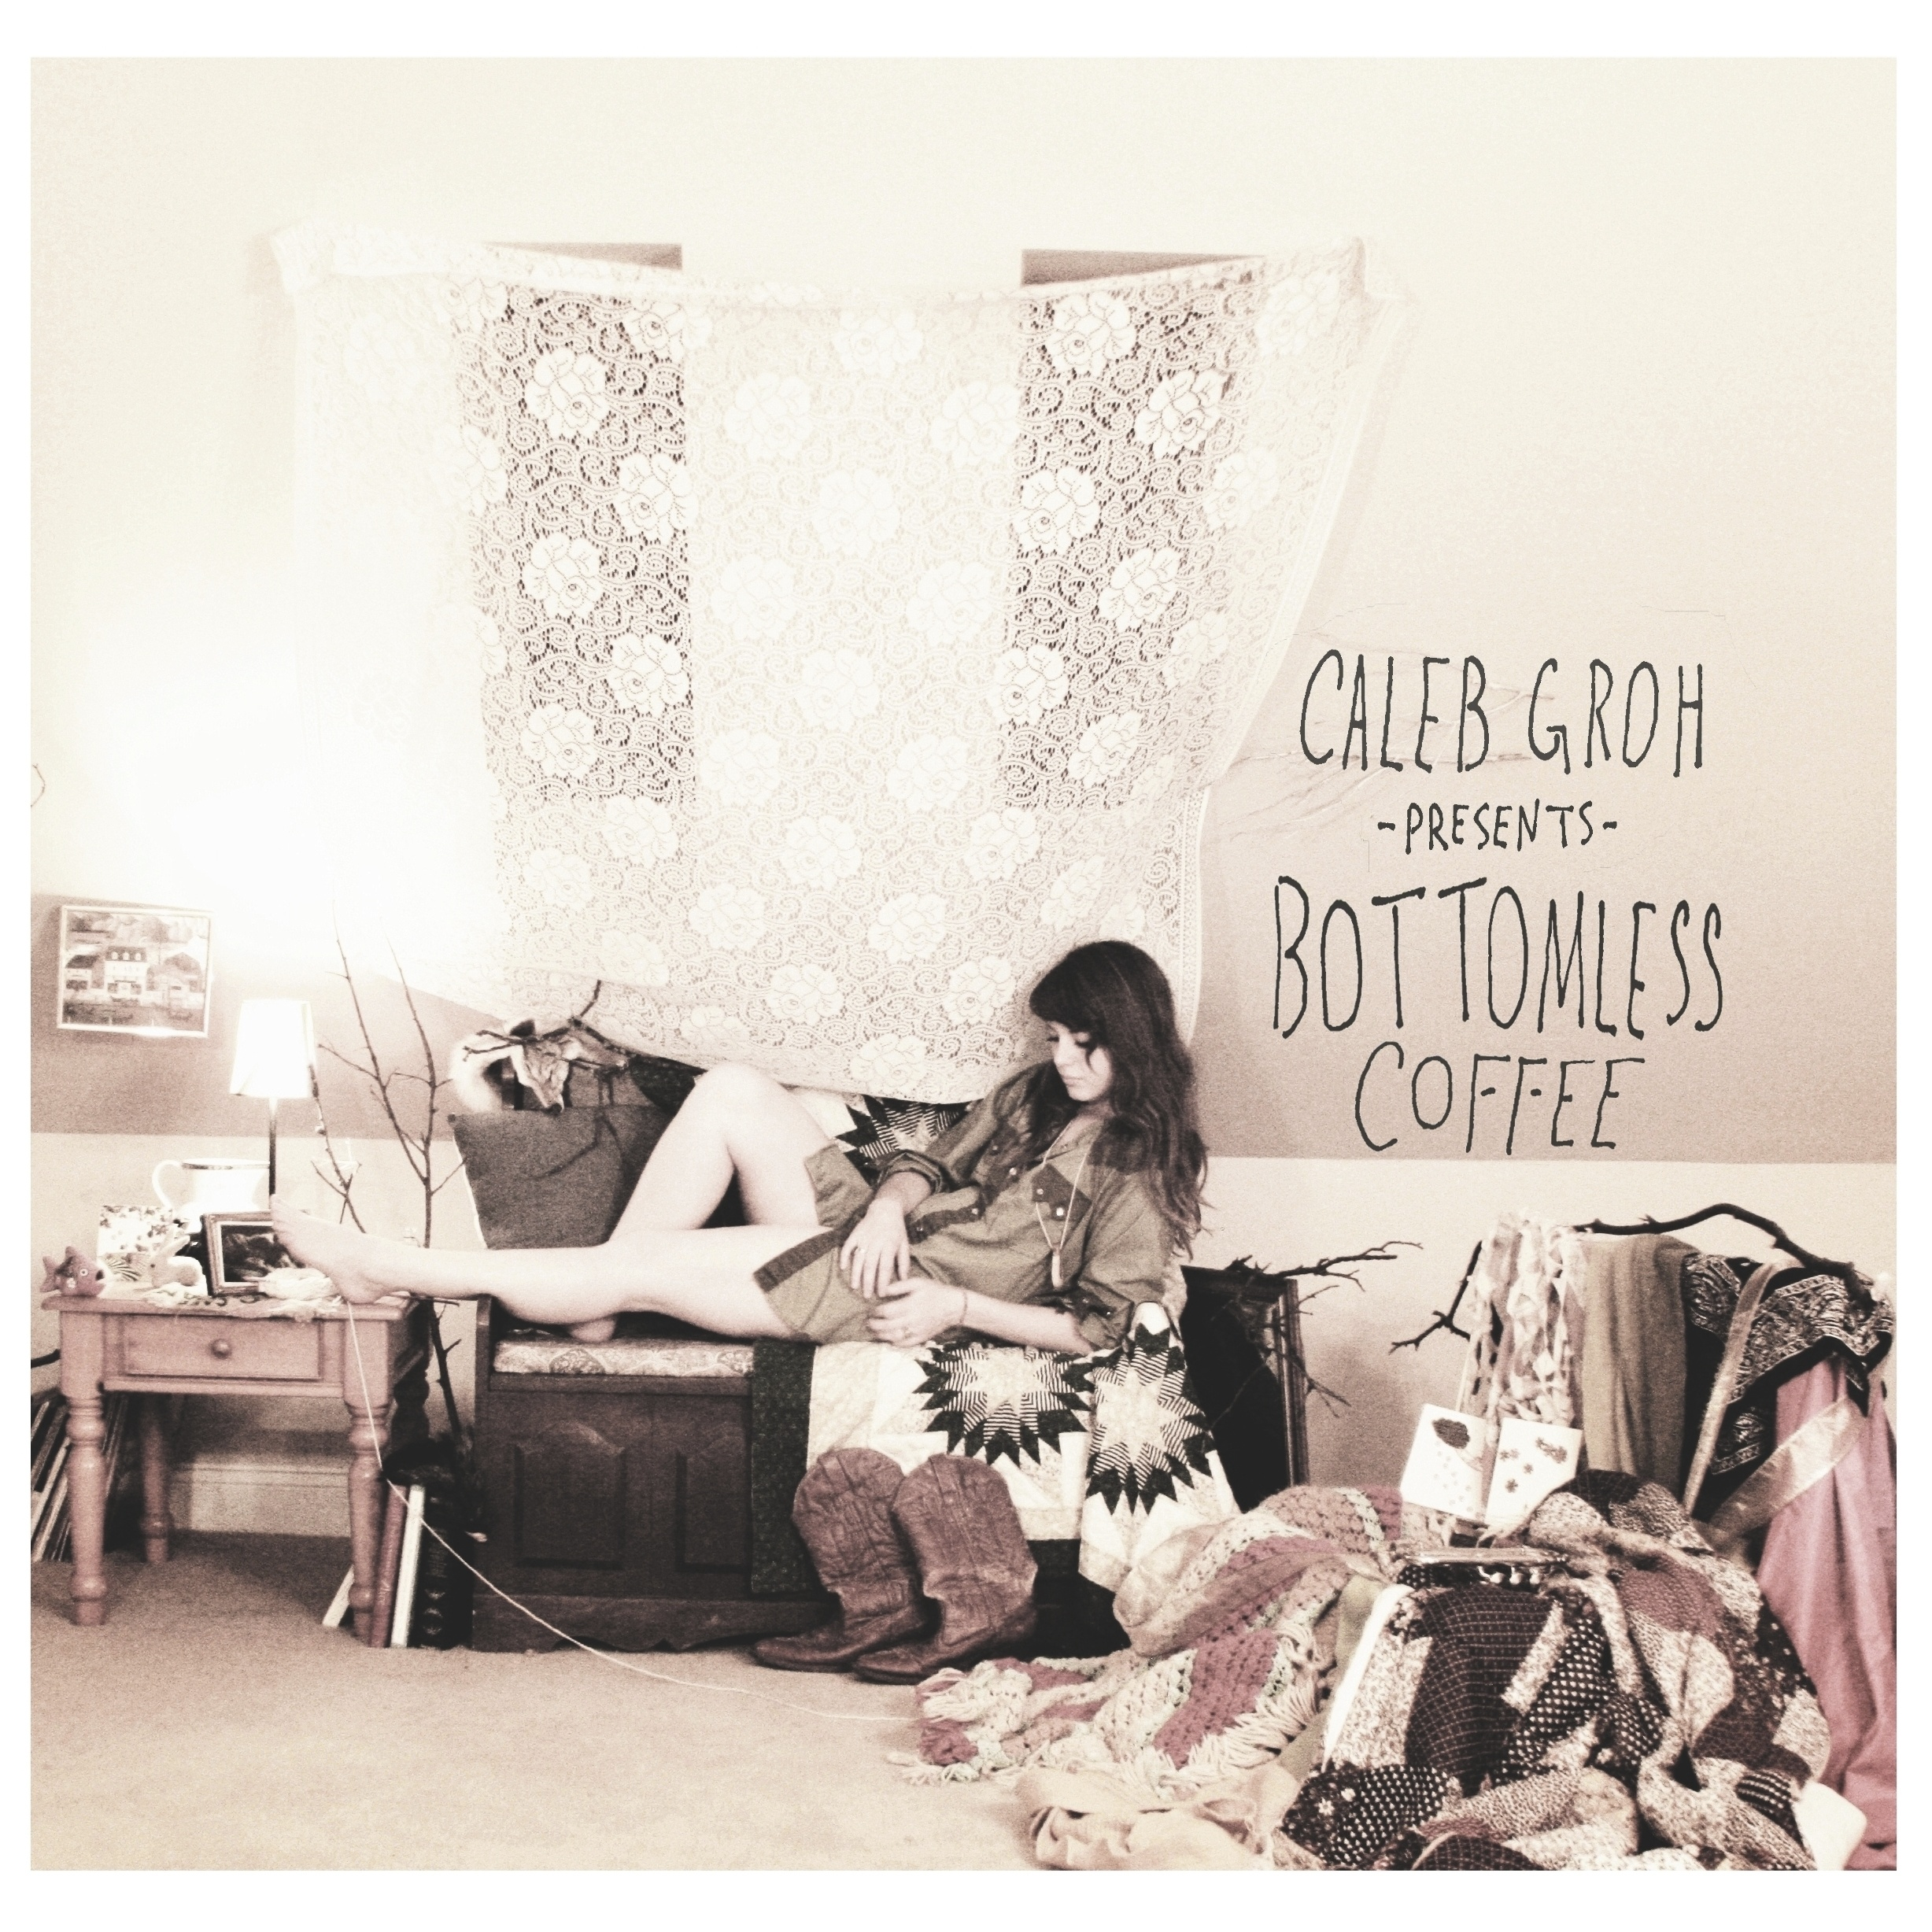 Caleb Groh - Bottomless Coffee